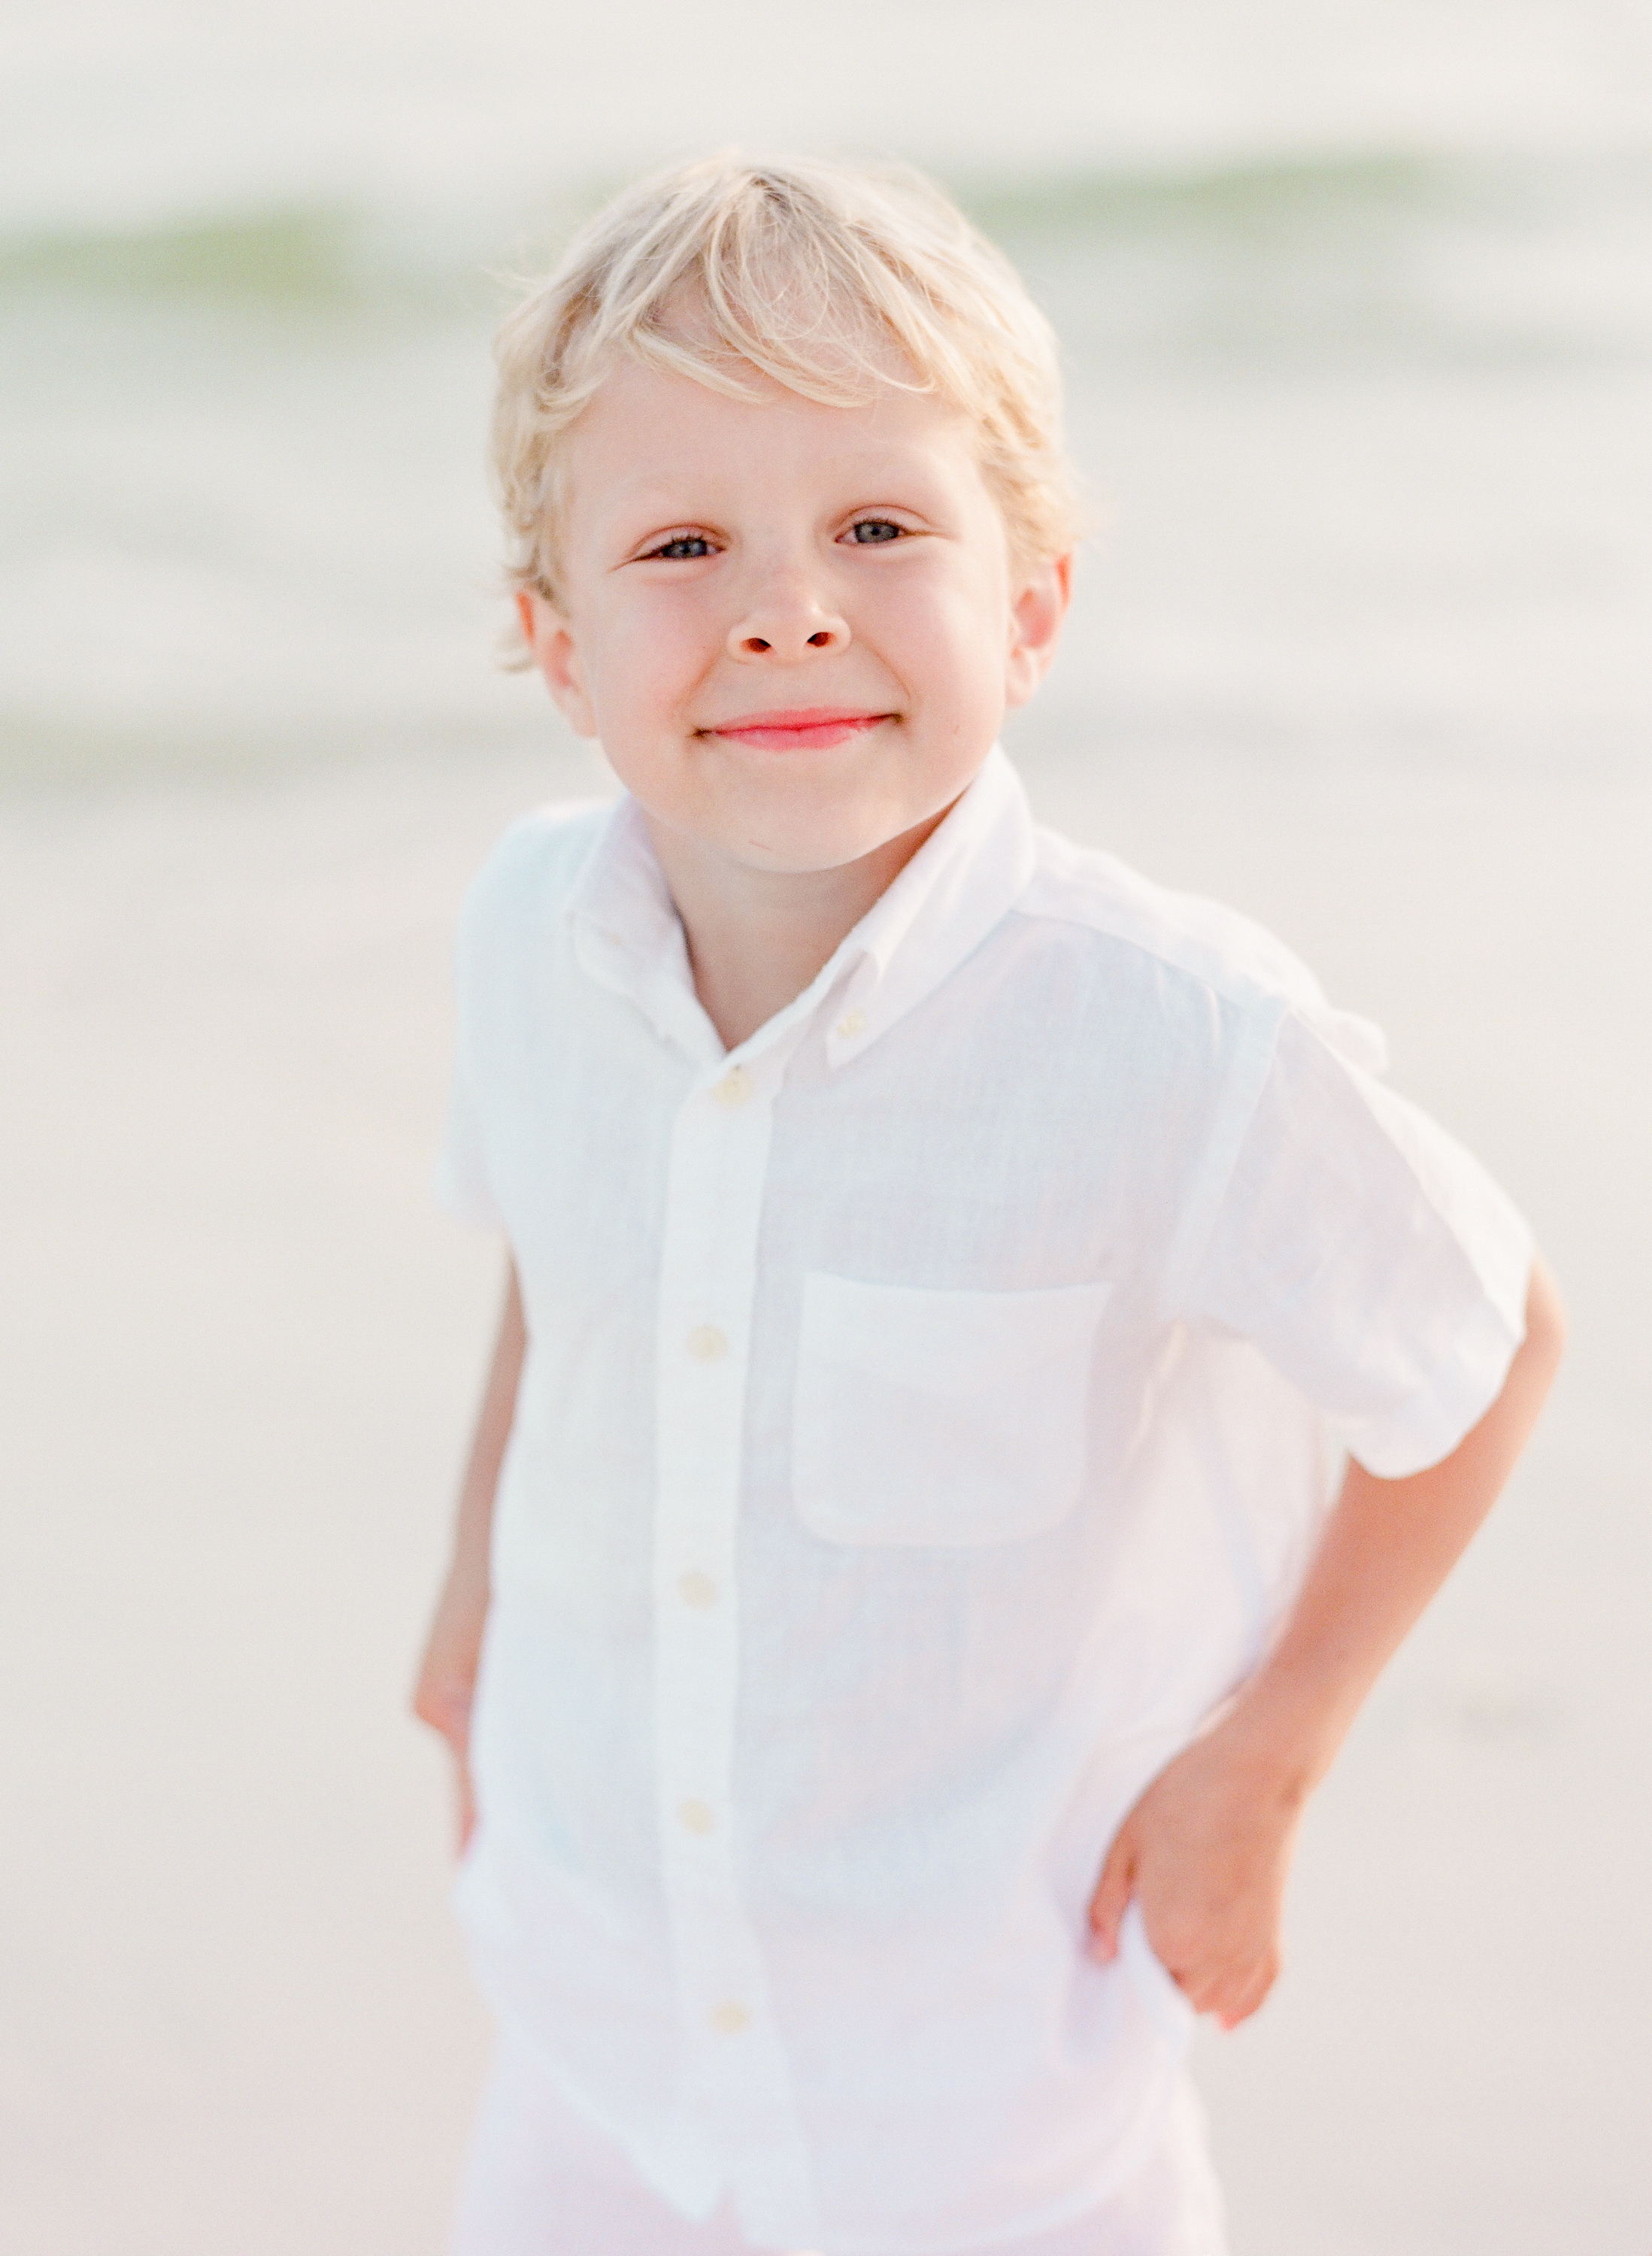 Little boy at the beach | Kaylie B. Poplin Photography | Watercolor, Florida family and wedding photographer